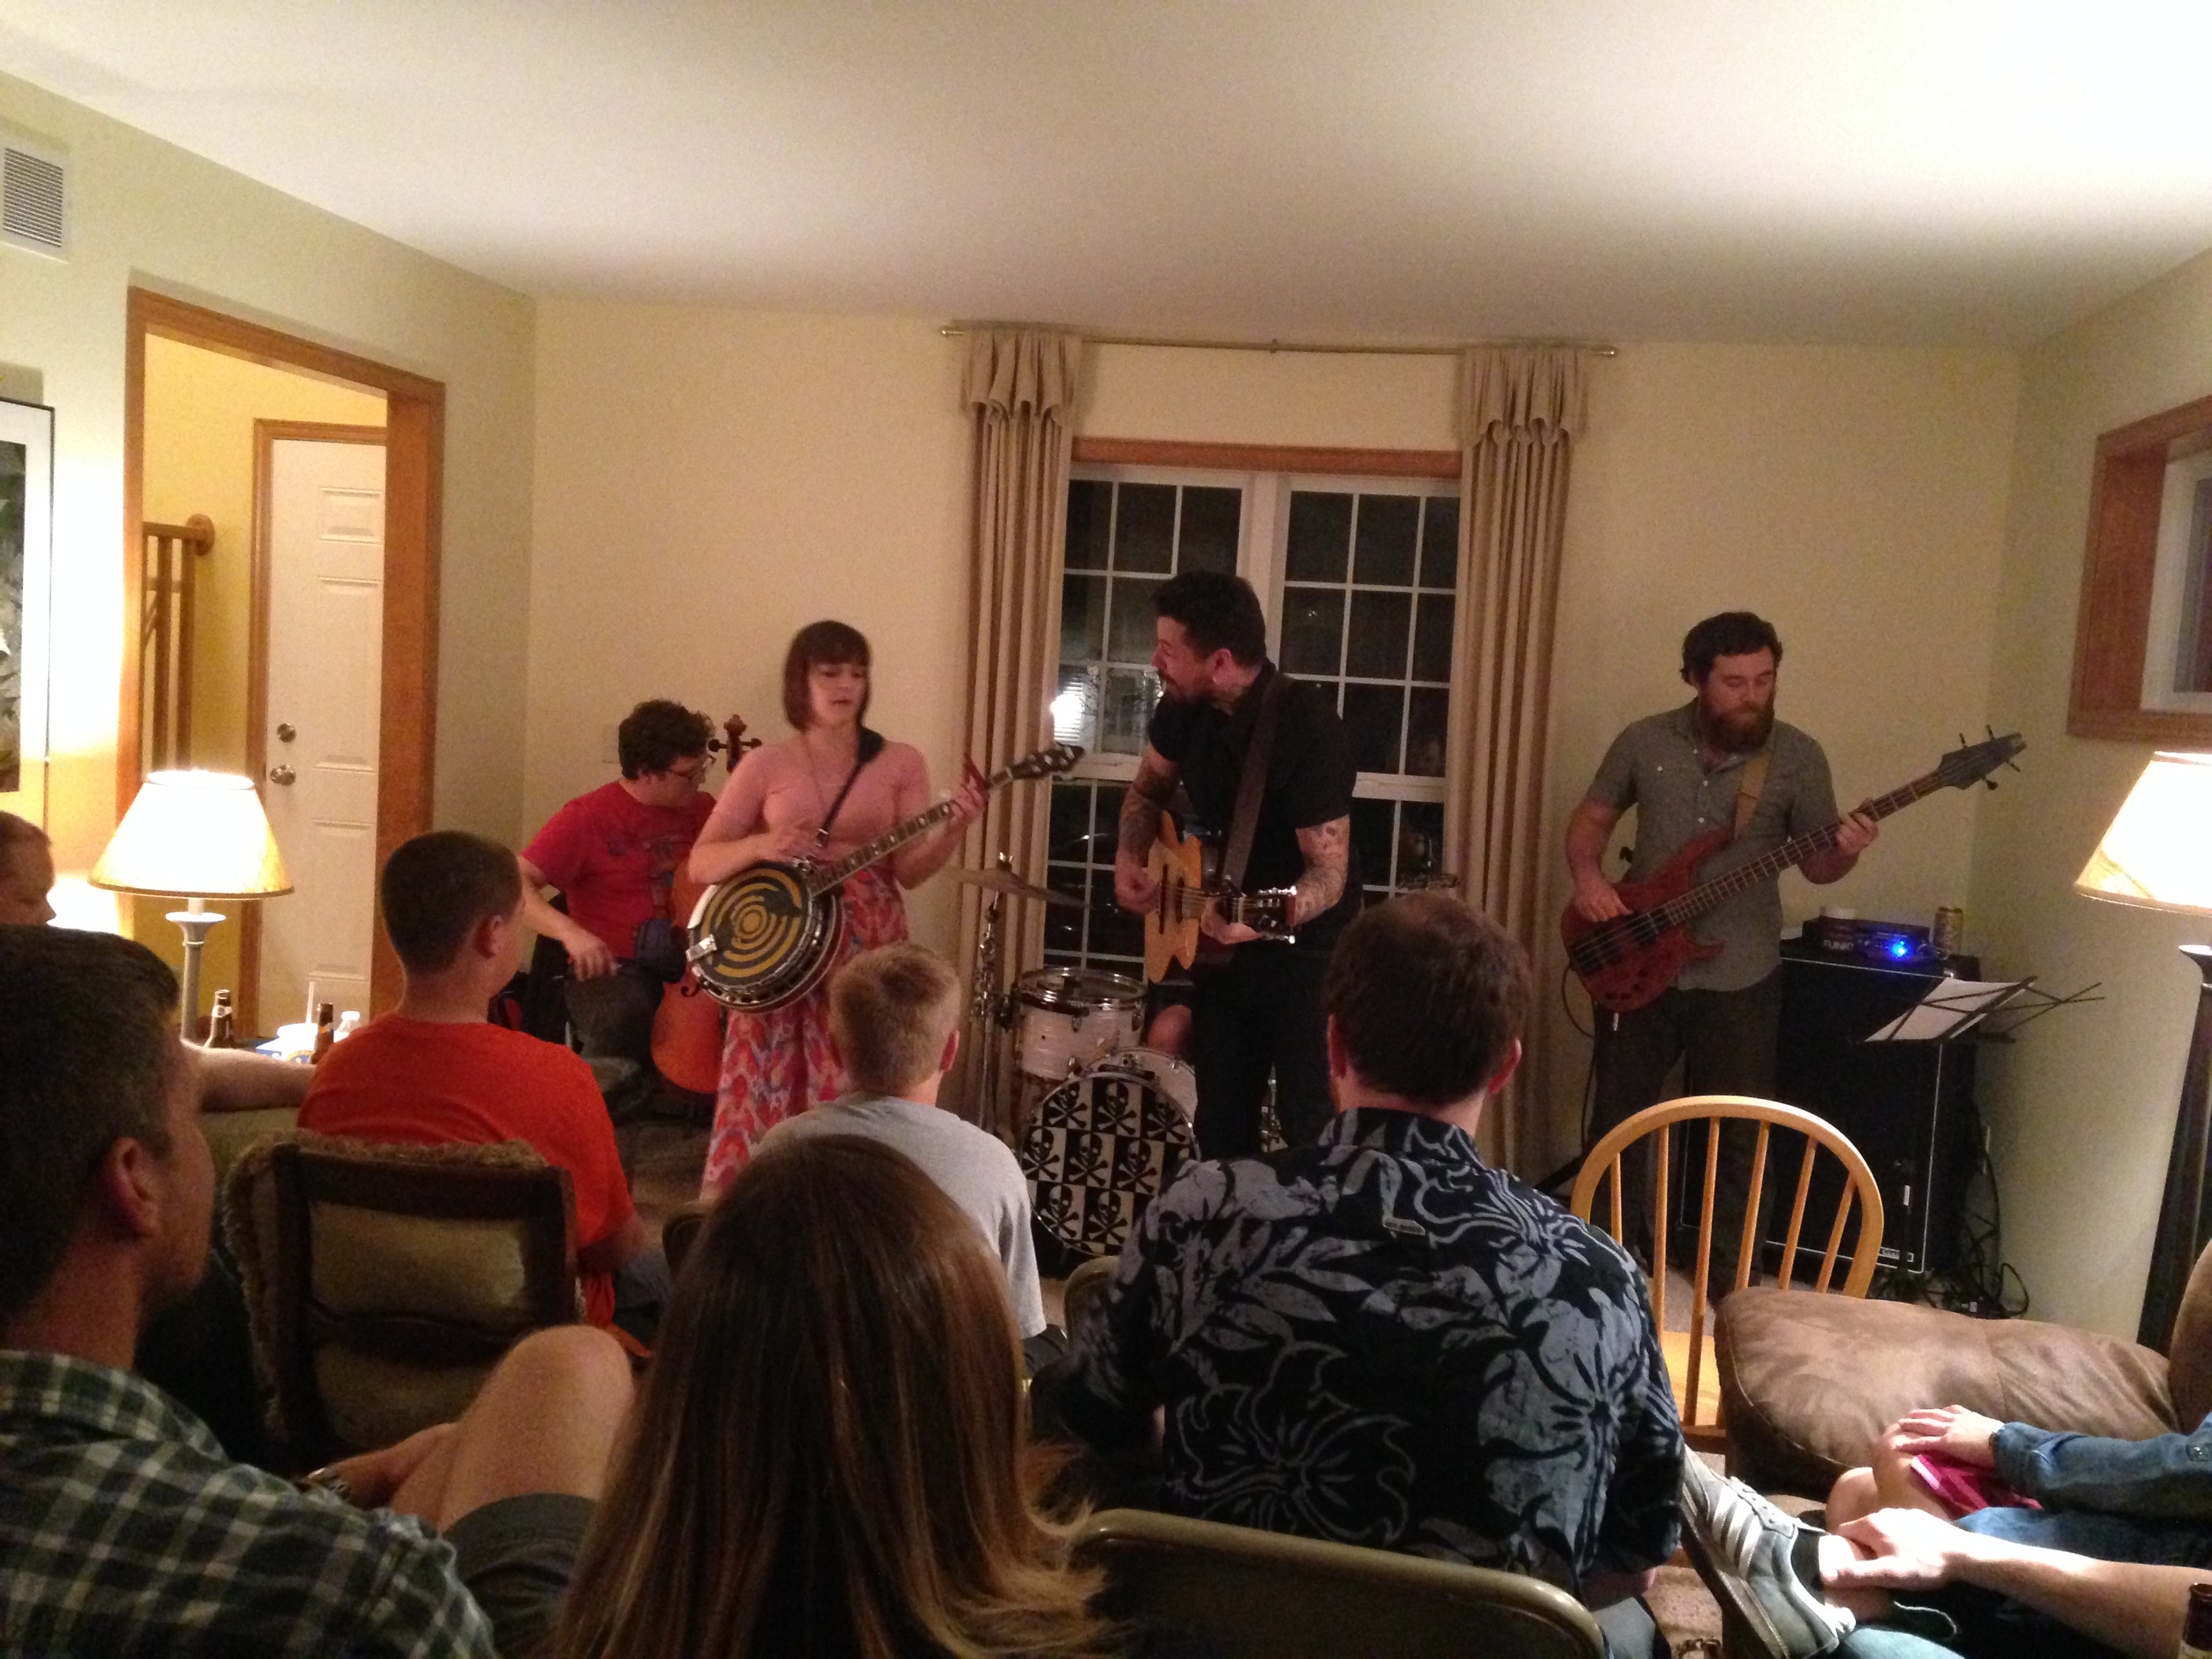 A house concert in action